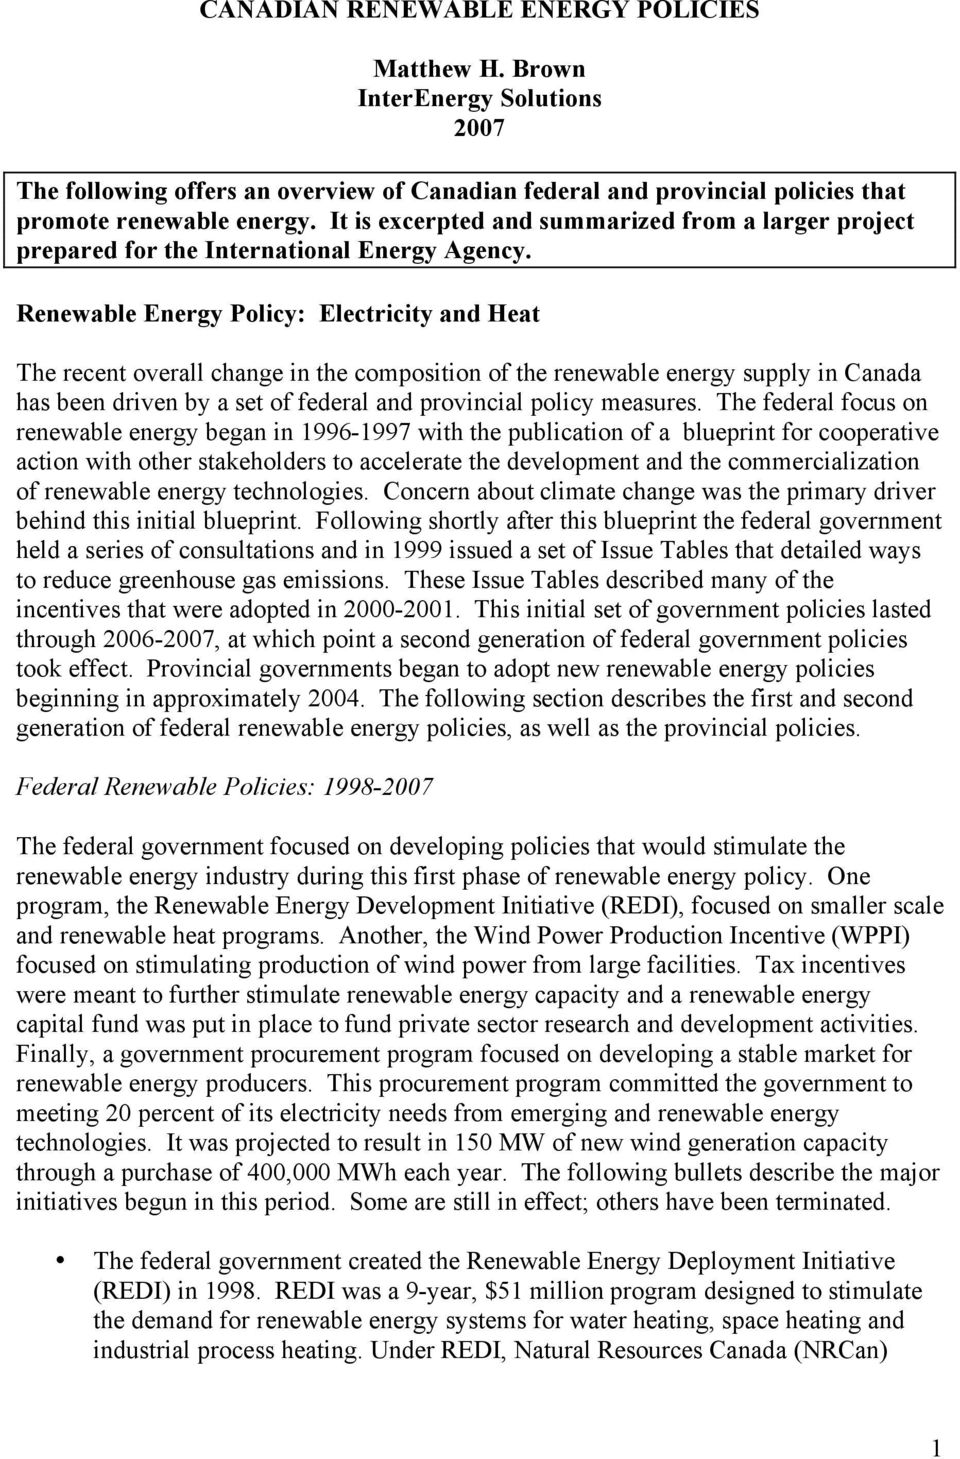 Renewable Energy Policy: Electricity and Heat The recent overall change in the composition of the renewable energy supply in Canada has been driven by a set of federal and provincial policy measures.